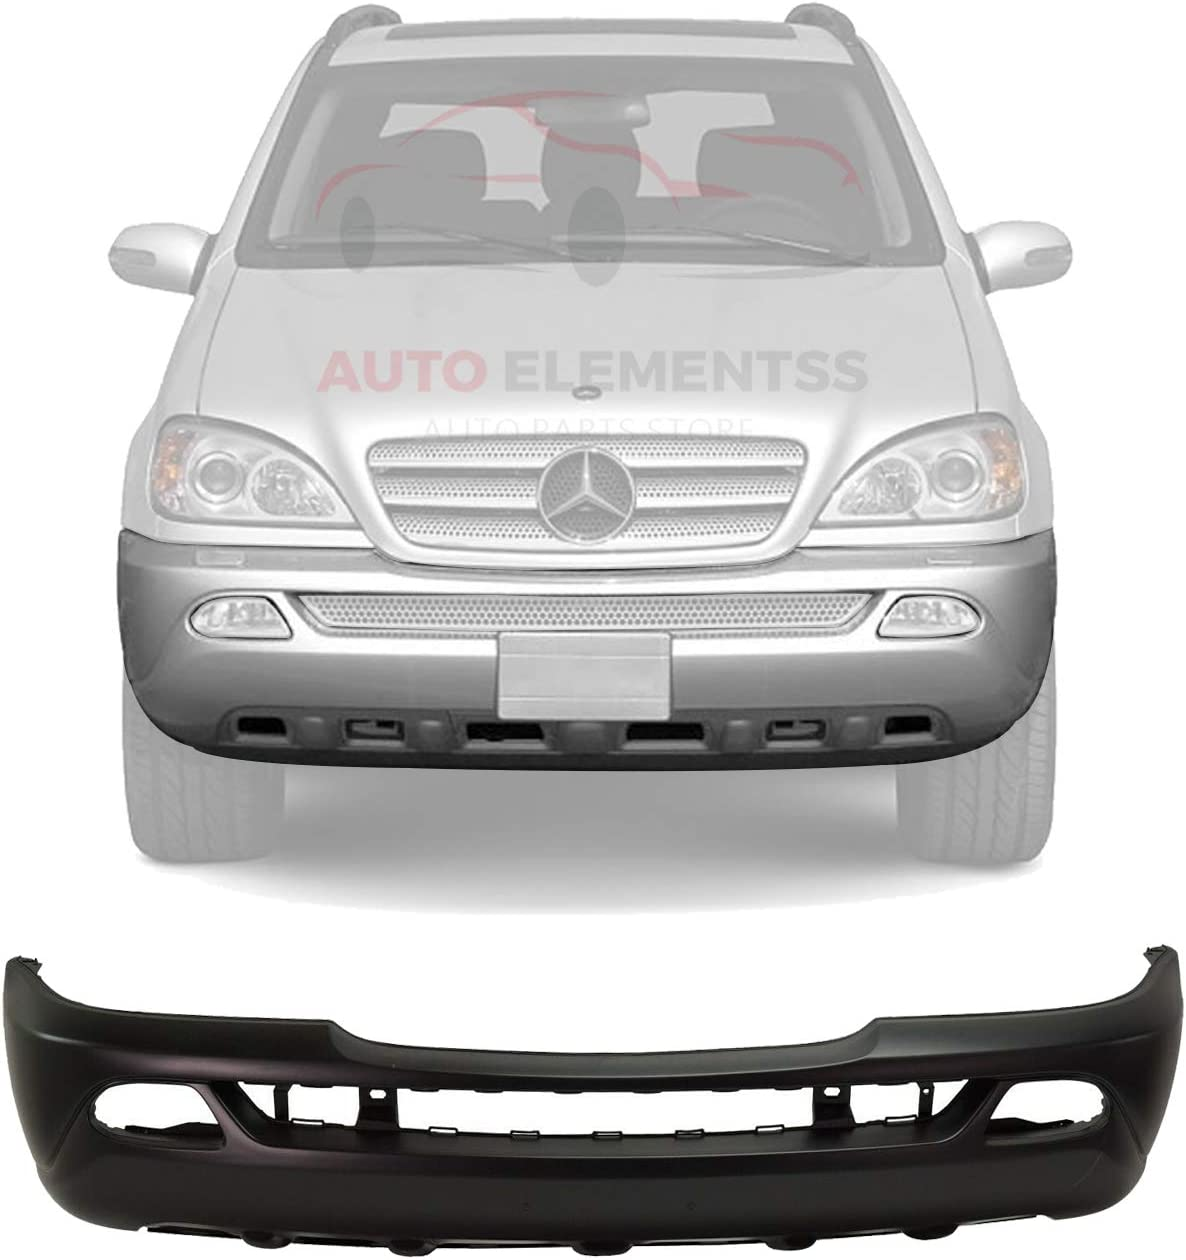 New Front Max 72% OFF Bumper Wholesale Cover Primed Plastic Light Spo With Fog Holes